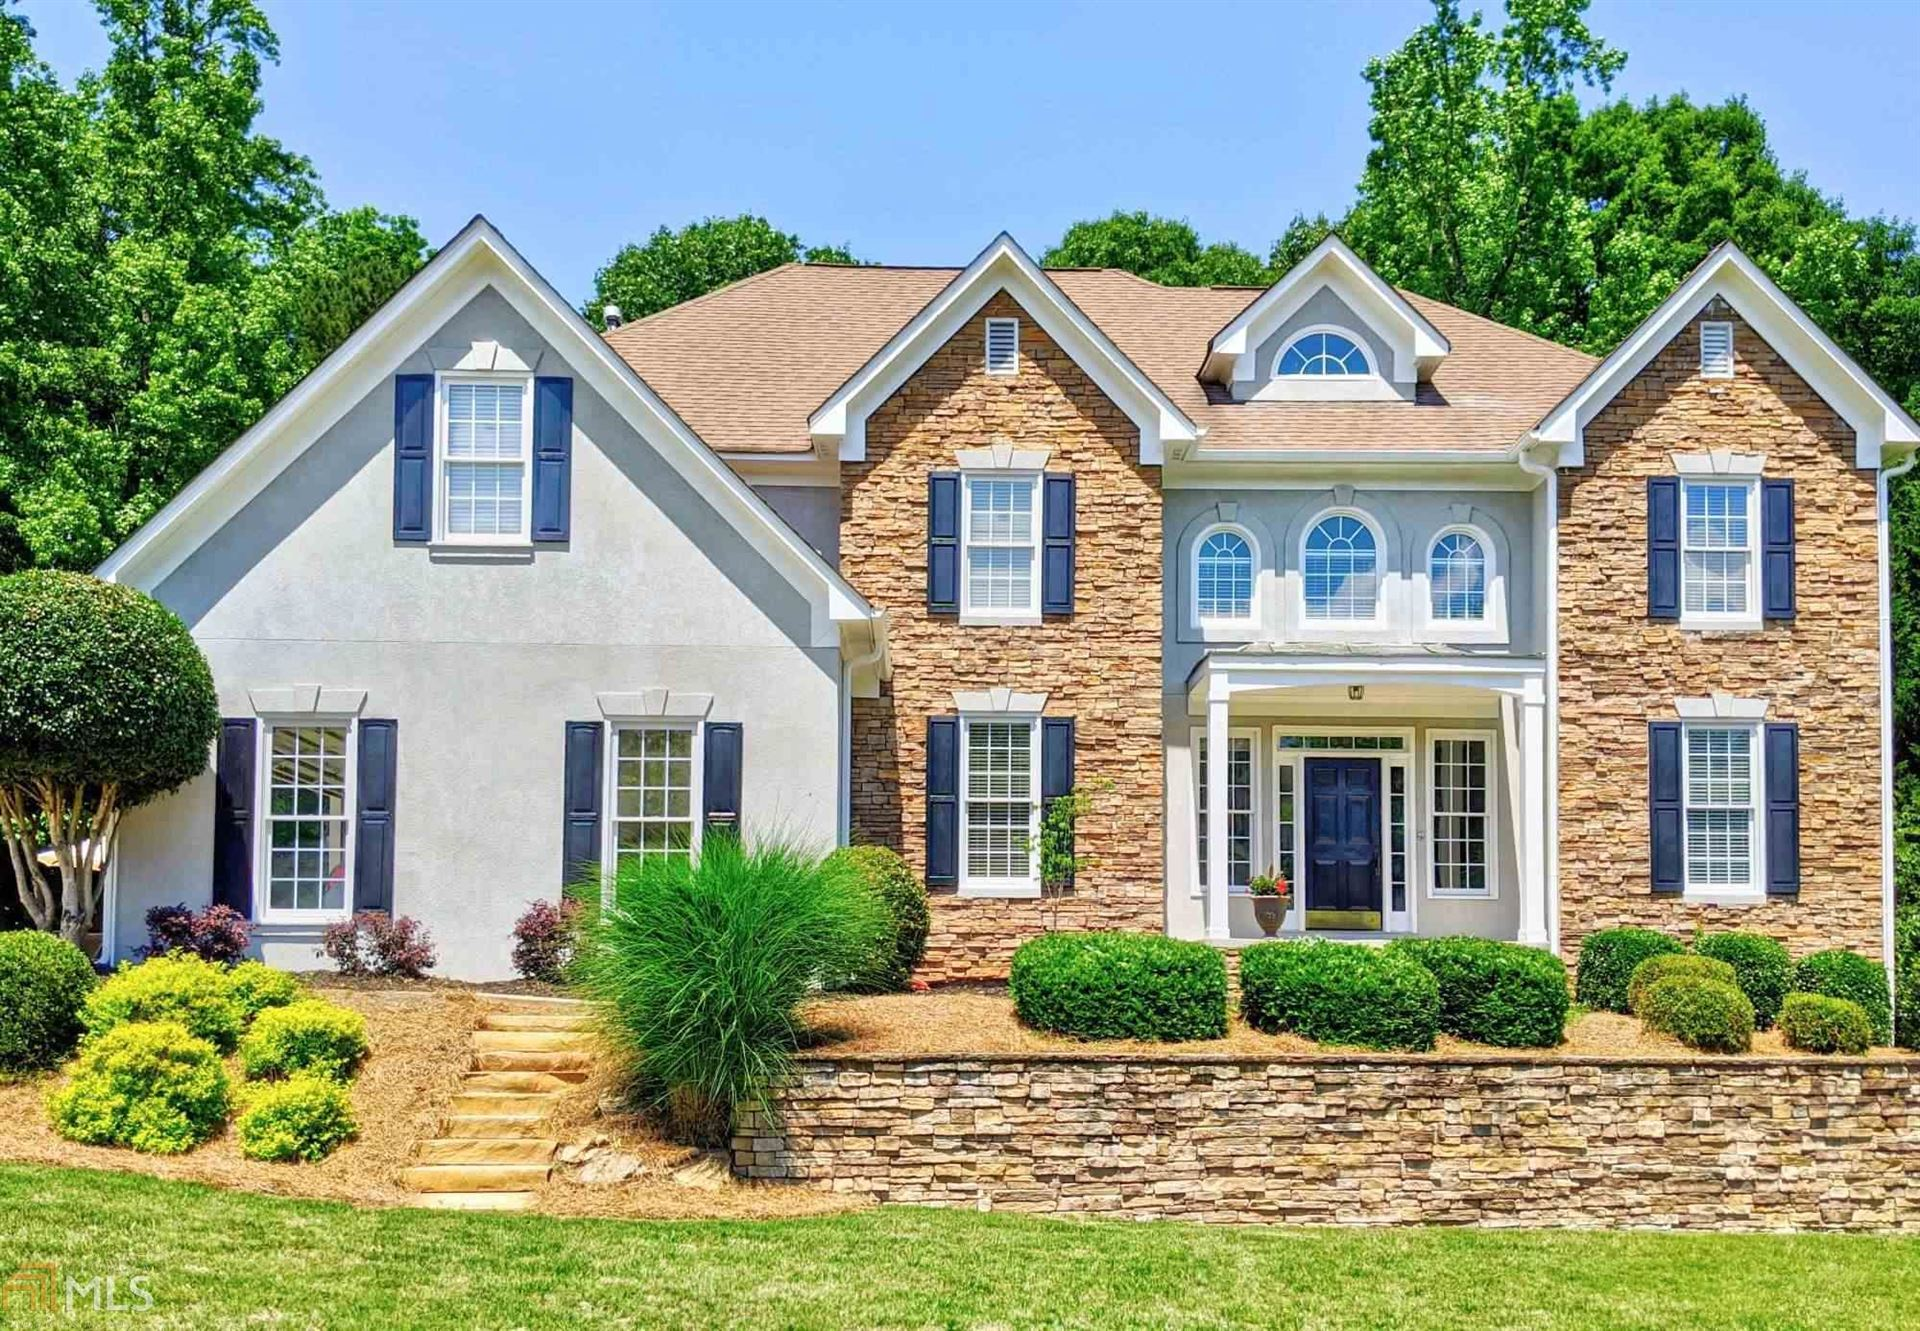 3585 Hidden Lake Dr, Cumming, GA 30041 - MLS#: 8803246